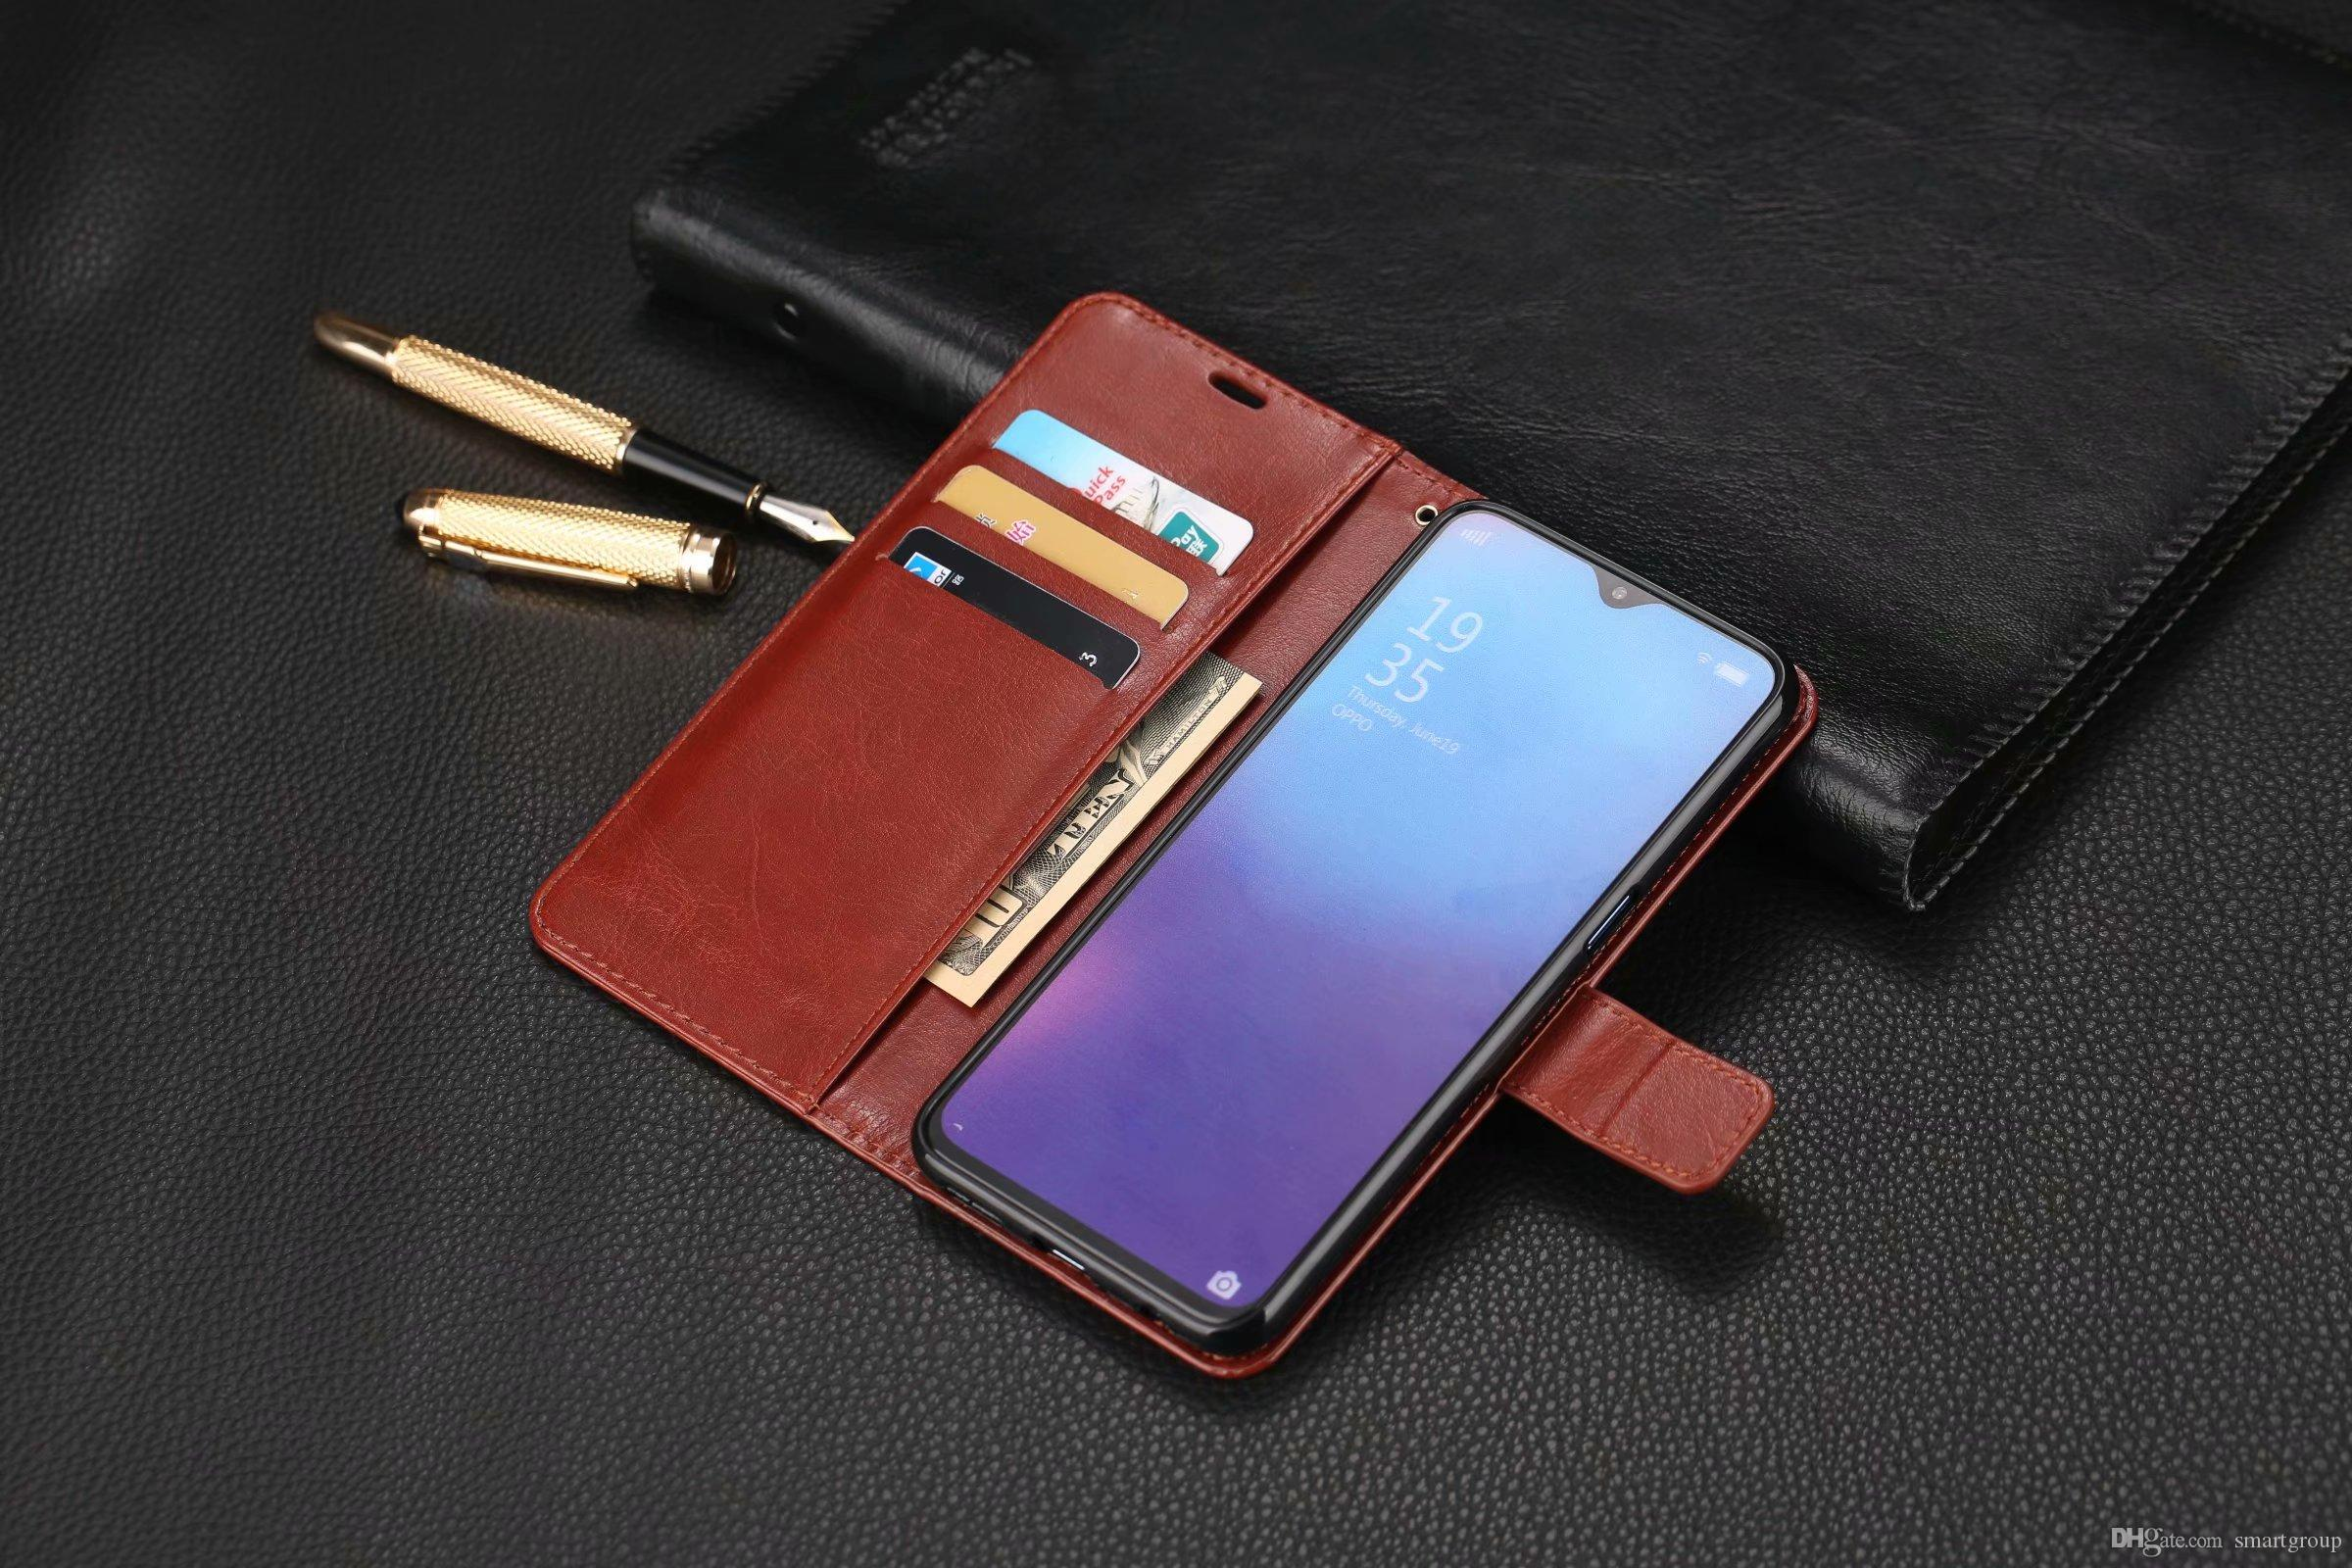 b054cf3a81b5b0 For Oppo K1 Case Purse Clip Flip Cover Luxury Hot Original Stand Leather  Case For OPPO K1 Customized Cell Phone Case Otter Cell Phone Cases From  Smartgroup